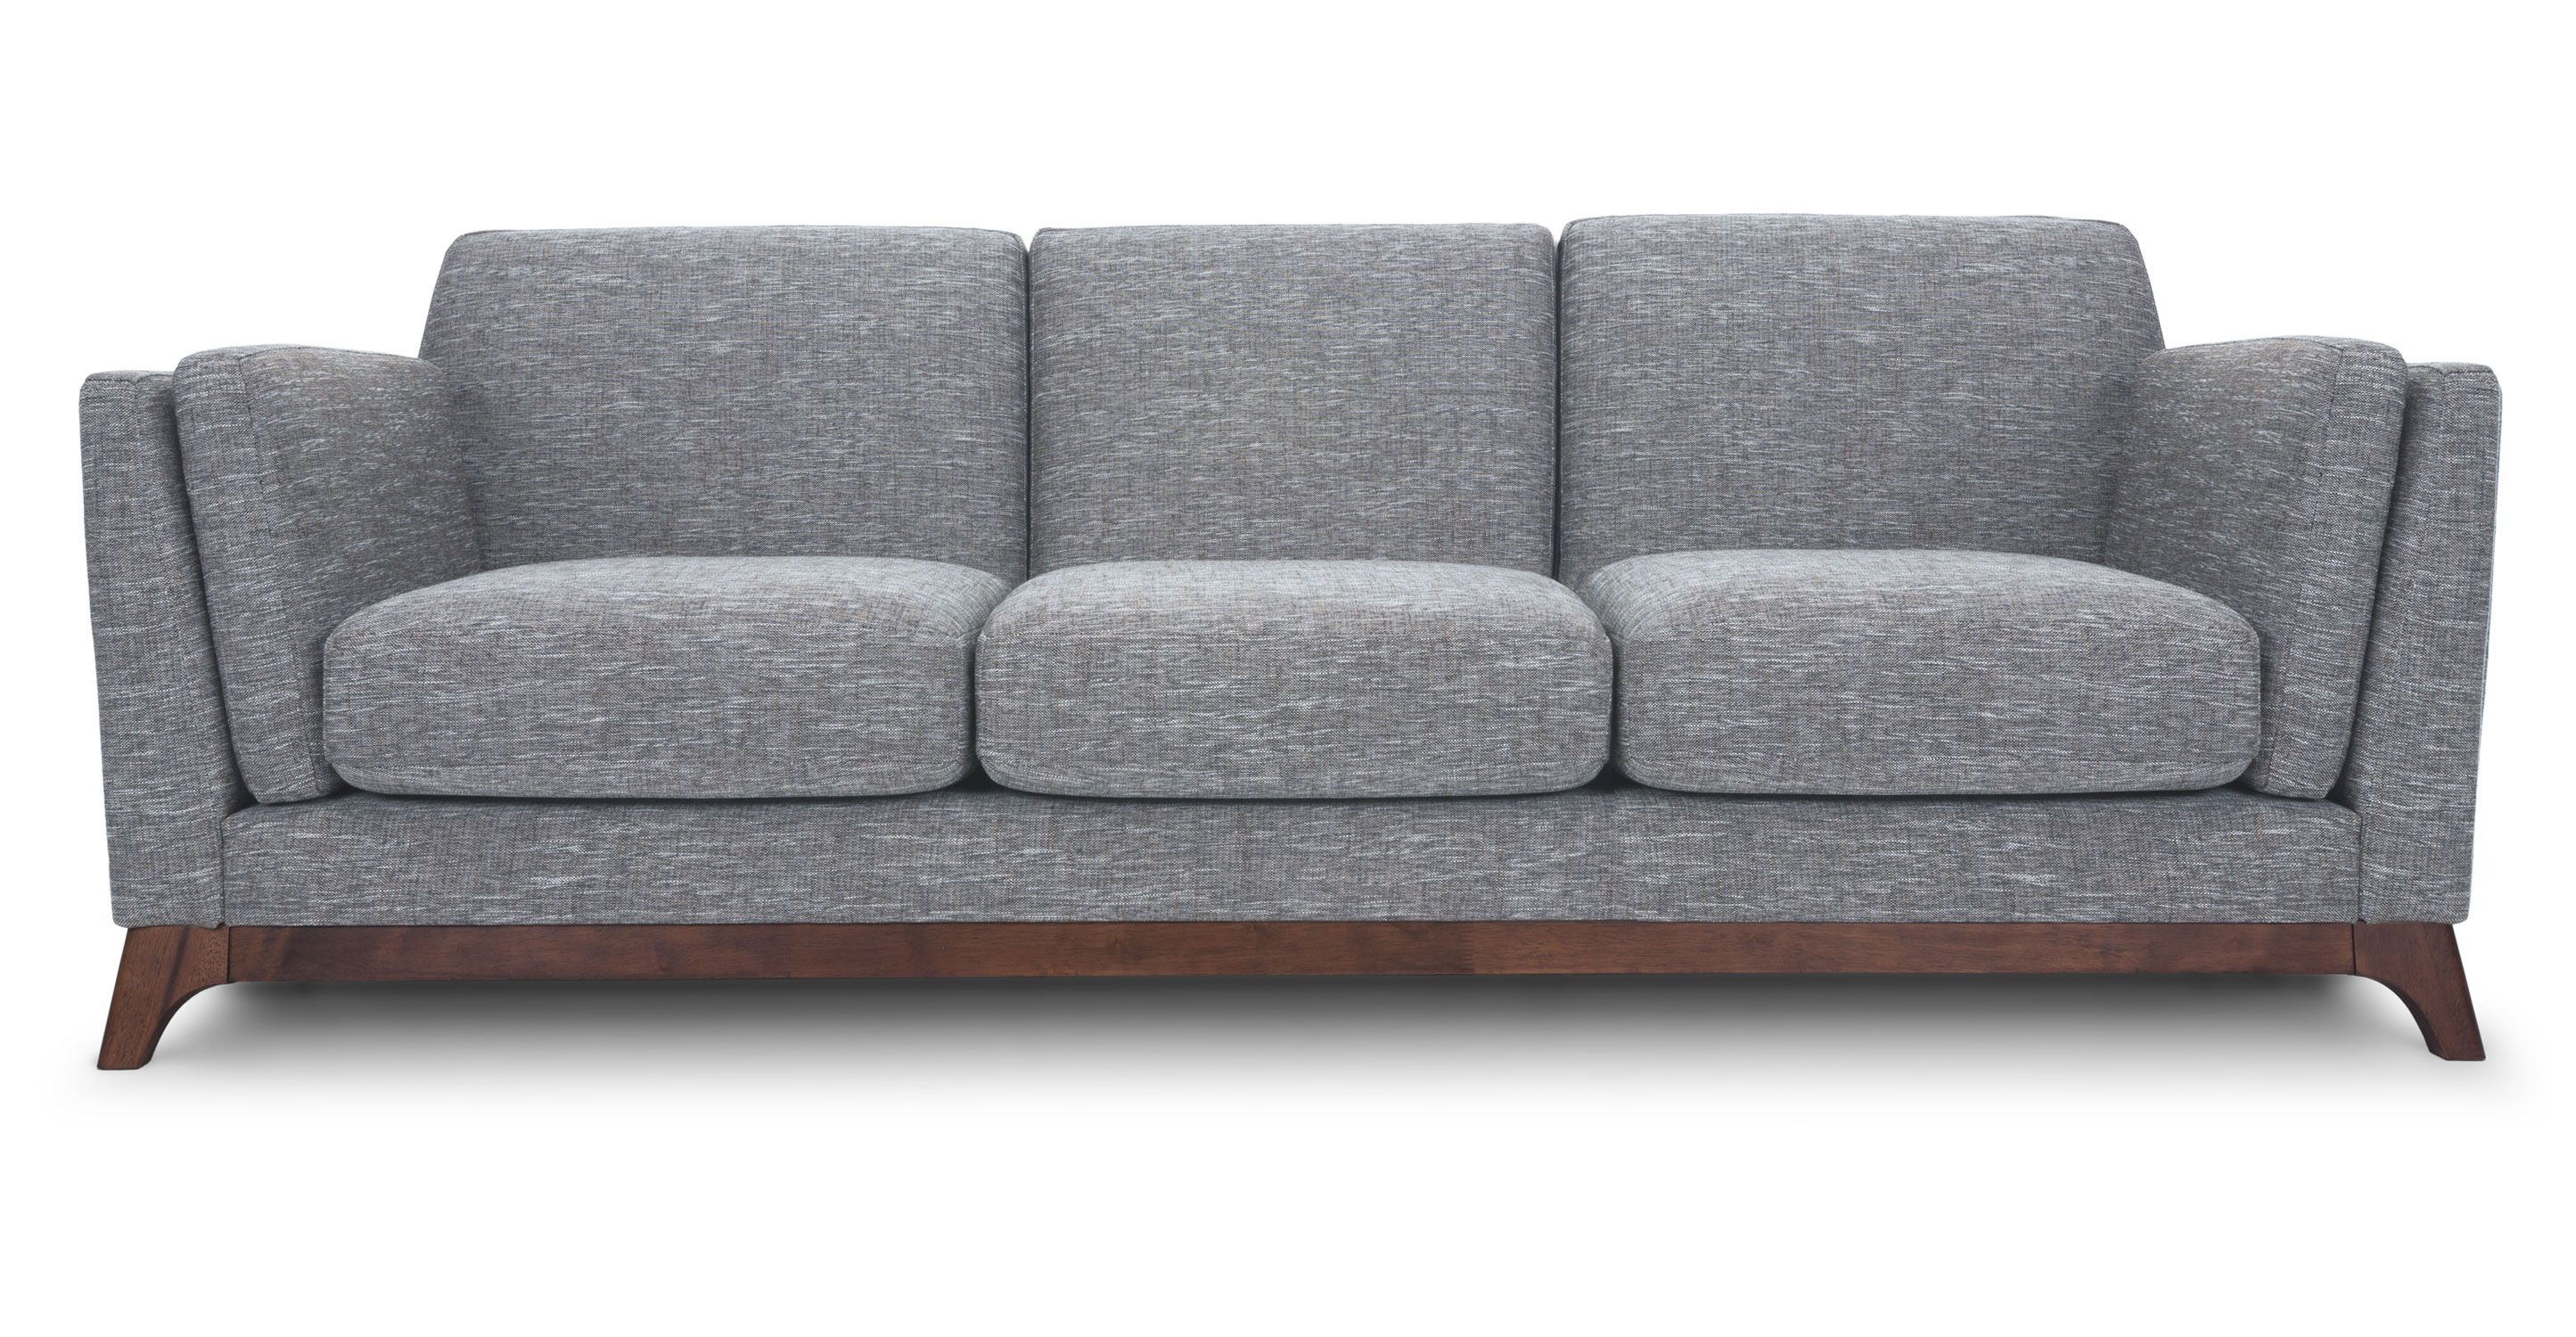 gray sofa 3 seater with solid wood legs article ceni modern furniture scandinavian furniture. Black Bedroom Furniture Sets. Home Design Ideas